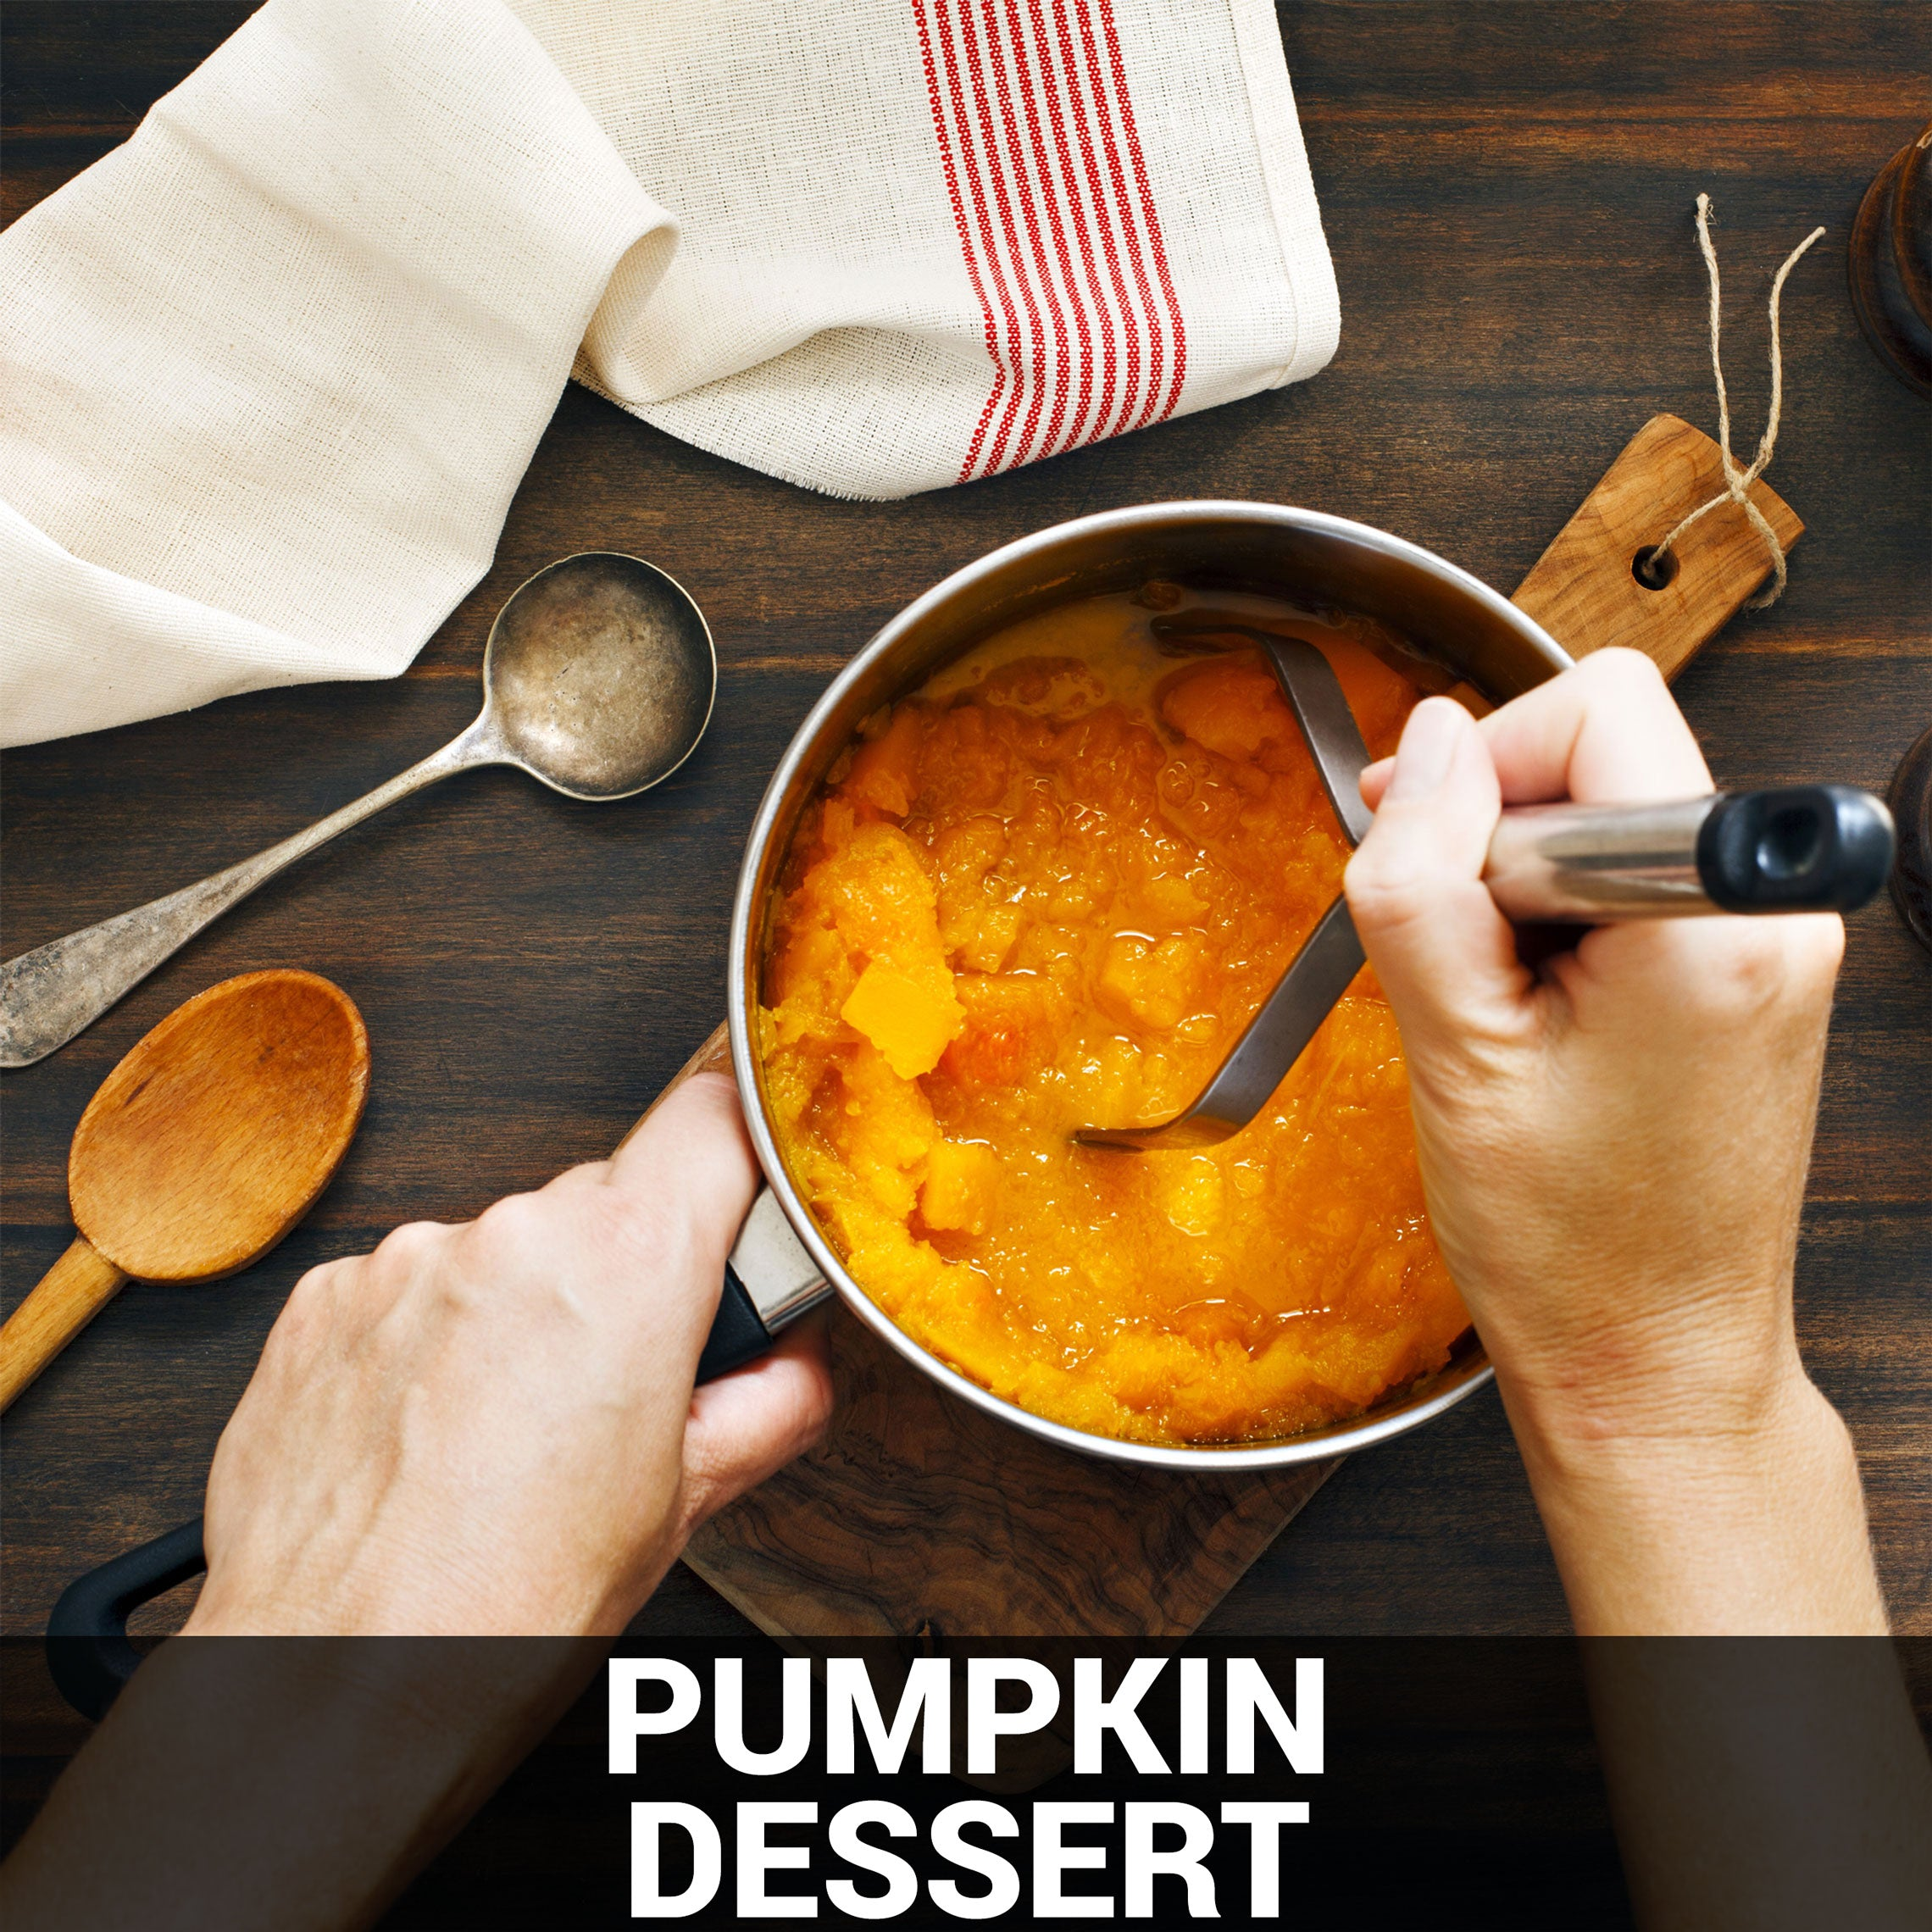 Pumpkin Dessert Recipe - Foods Alive